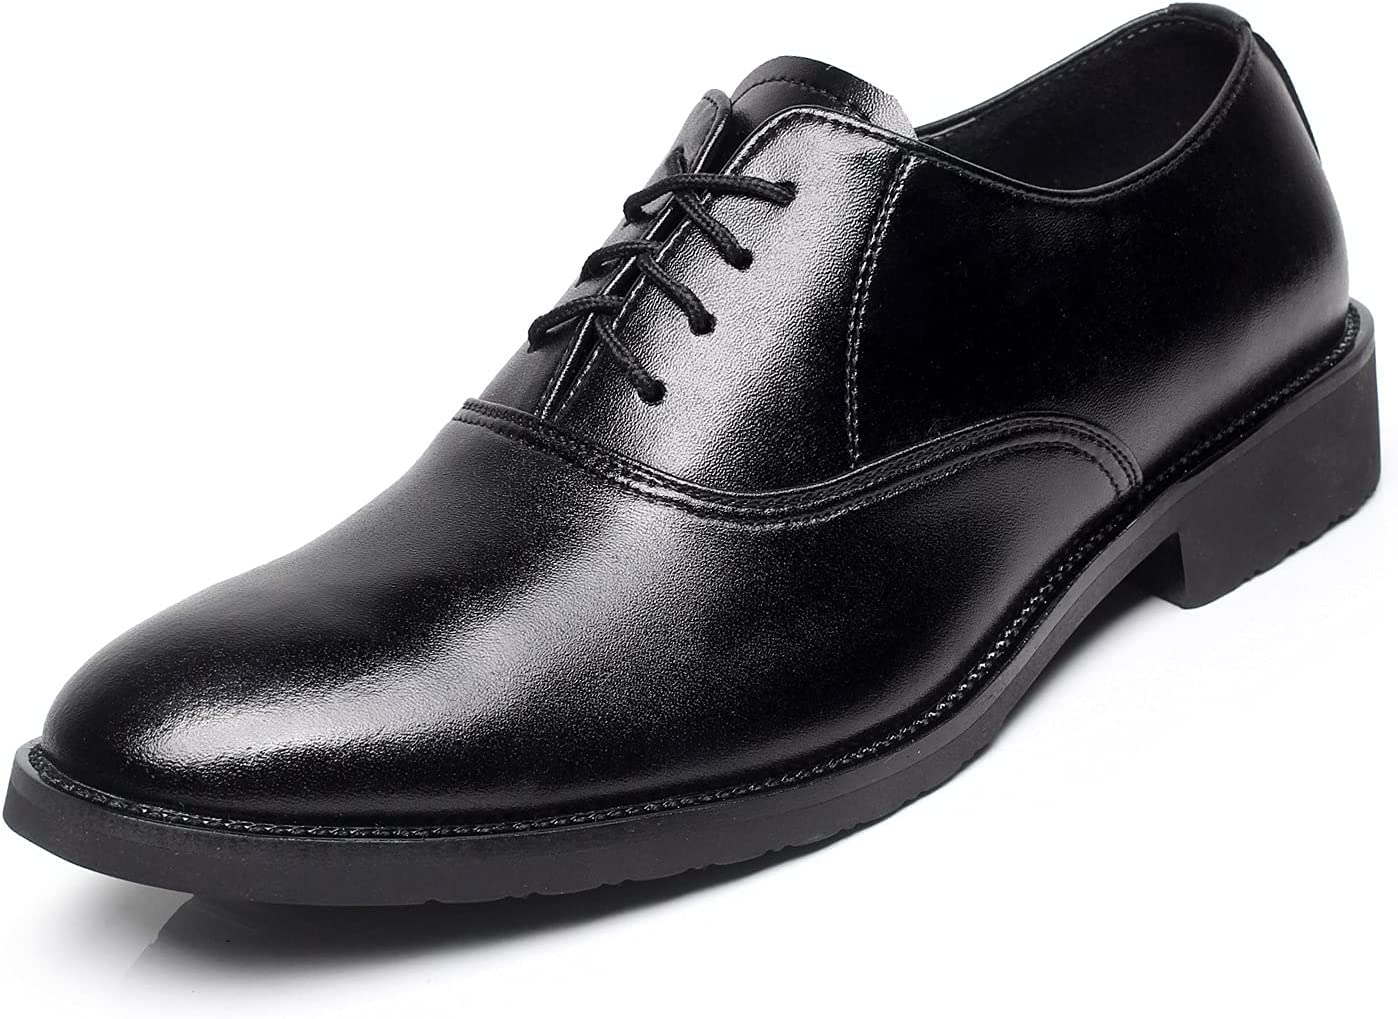 Pointedd Classic Dress Shoes for Men Lace up Derby Shoes Classic Slip Resistant Light Weight Prom (Color : Black, Size : 45EU)